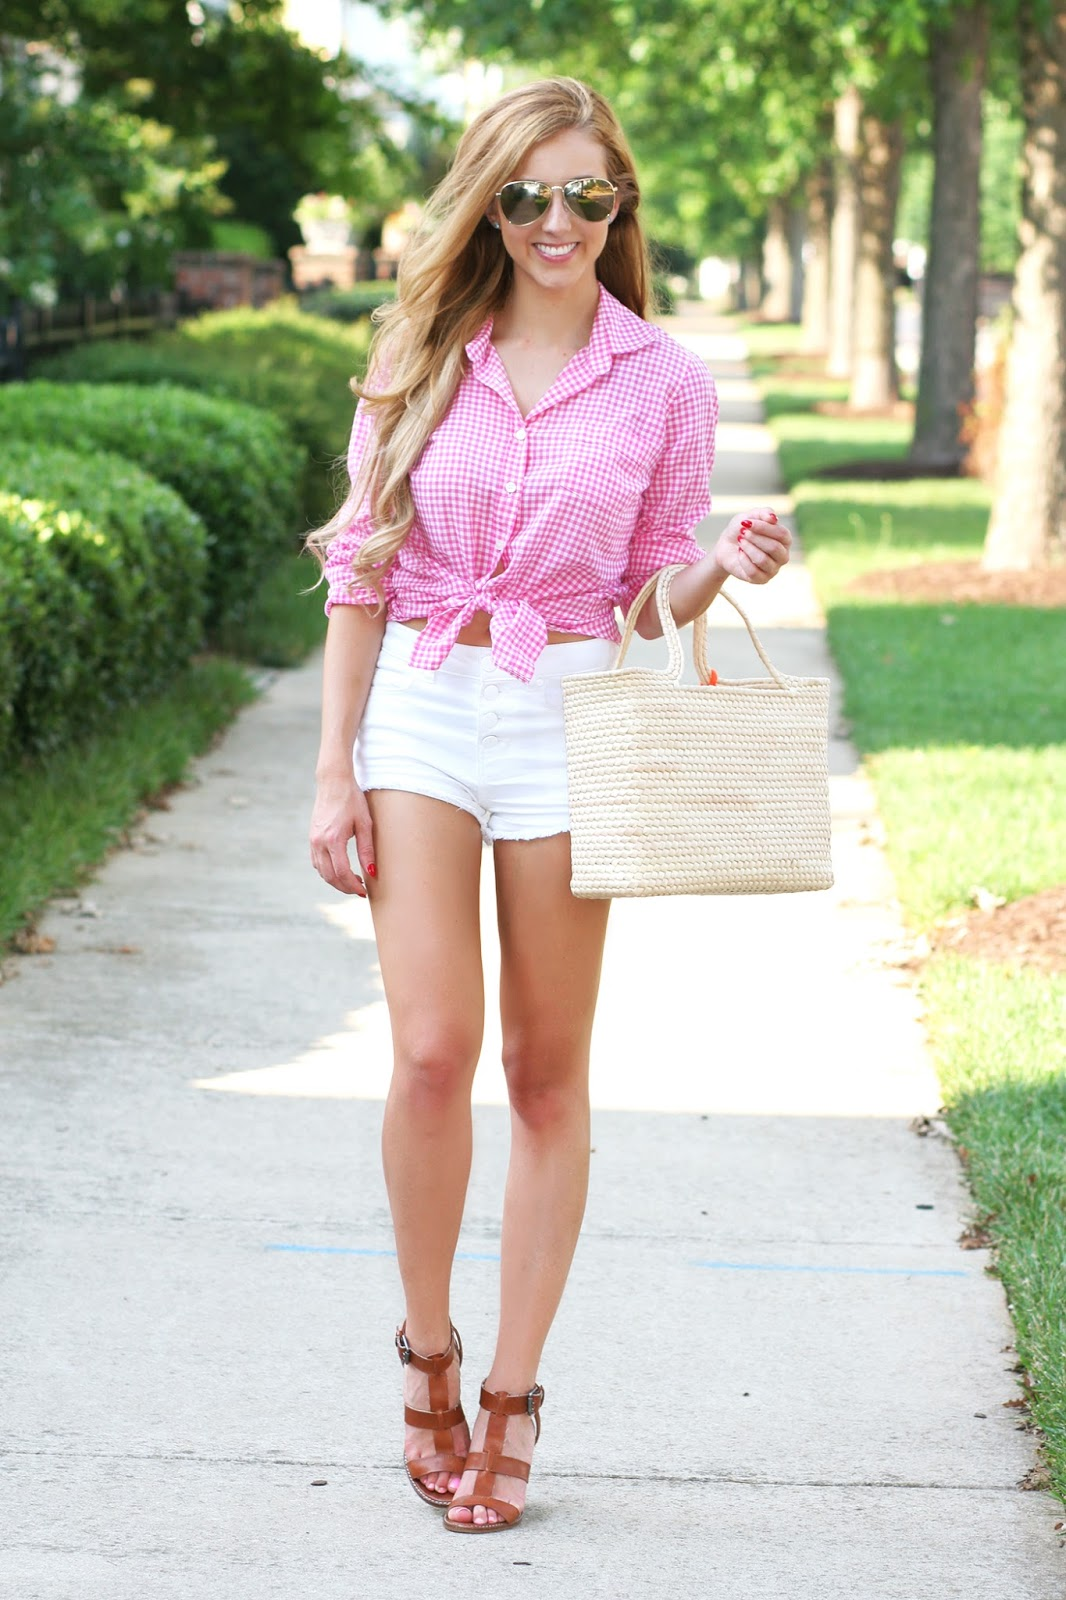 Summer-street-style-effortless-beach-look-with-straw-tote